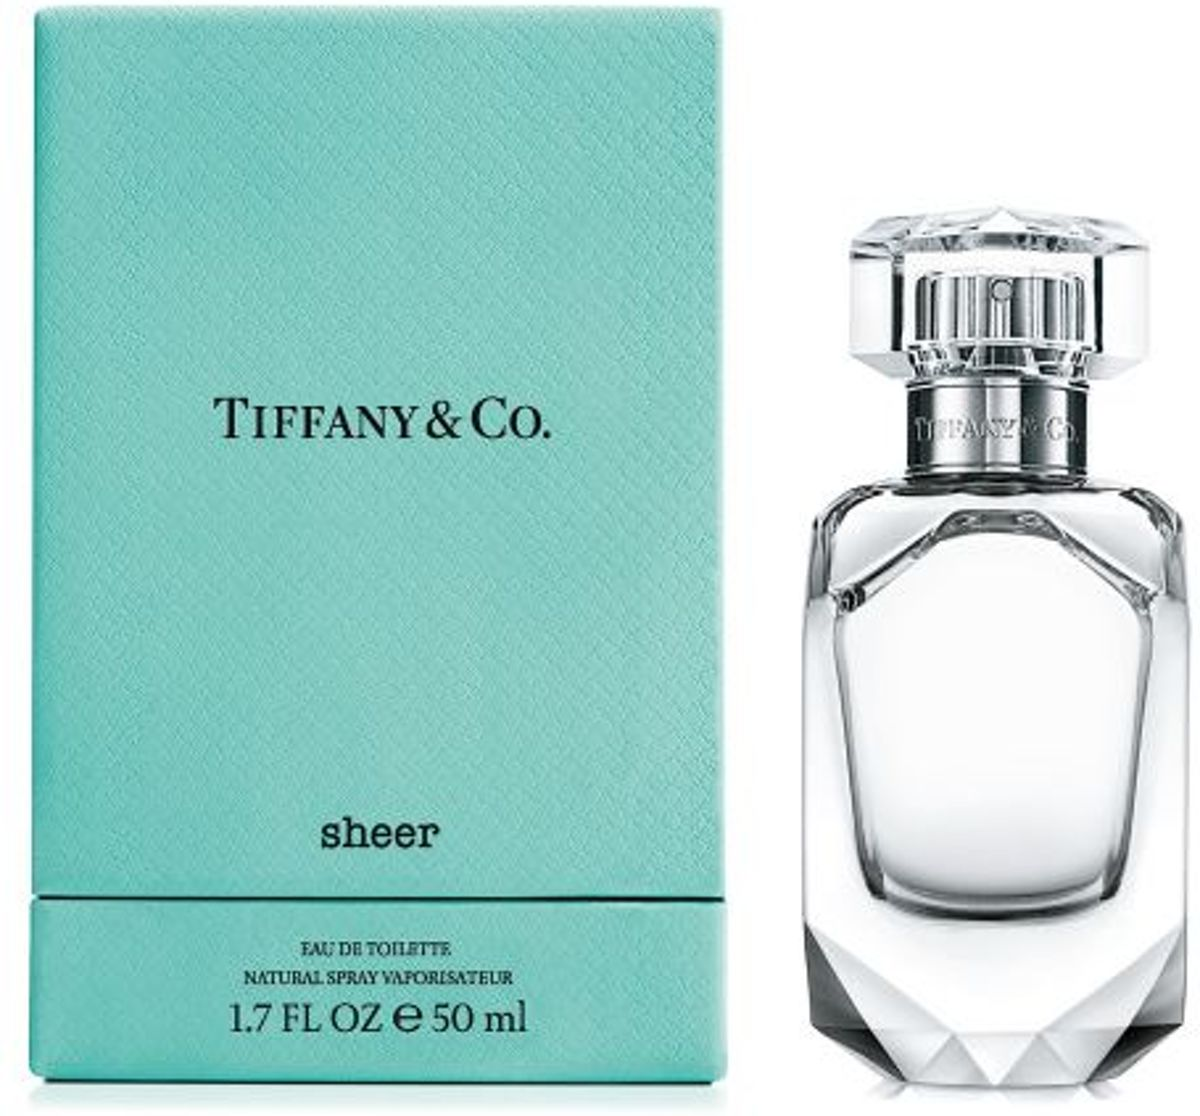 Tiffany & Co. Tiffany Sheer Eau de Toilette 50ml